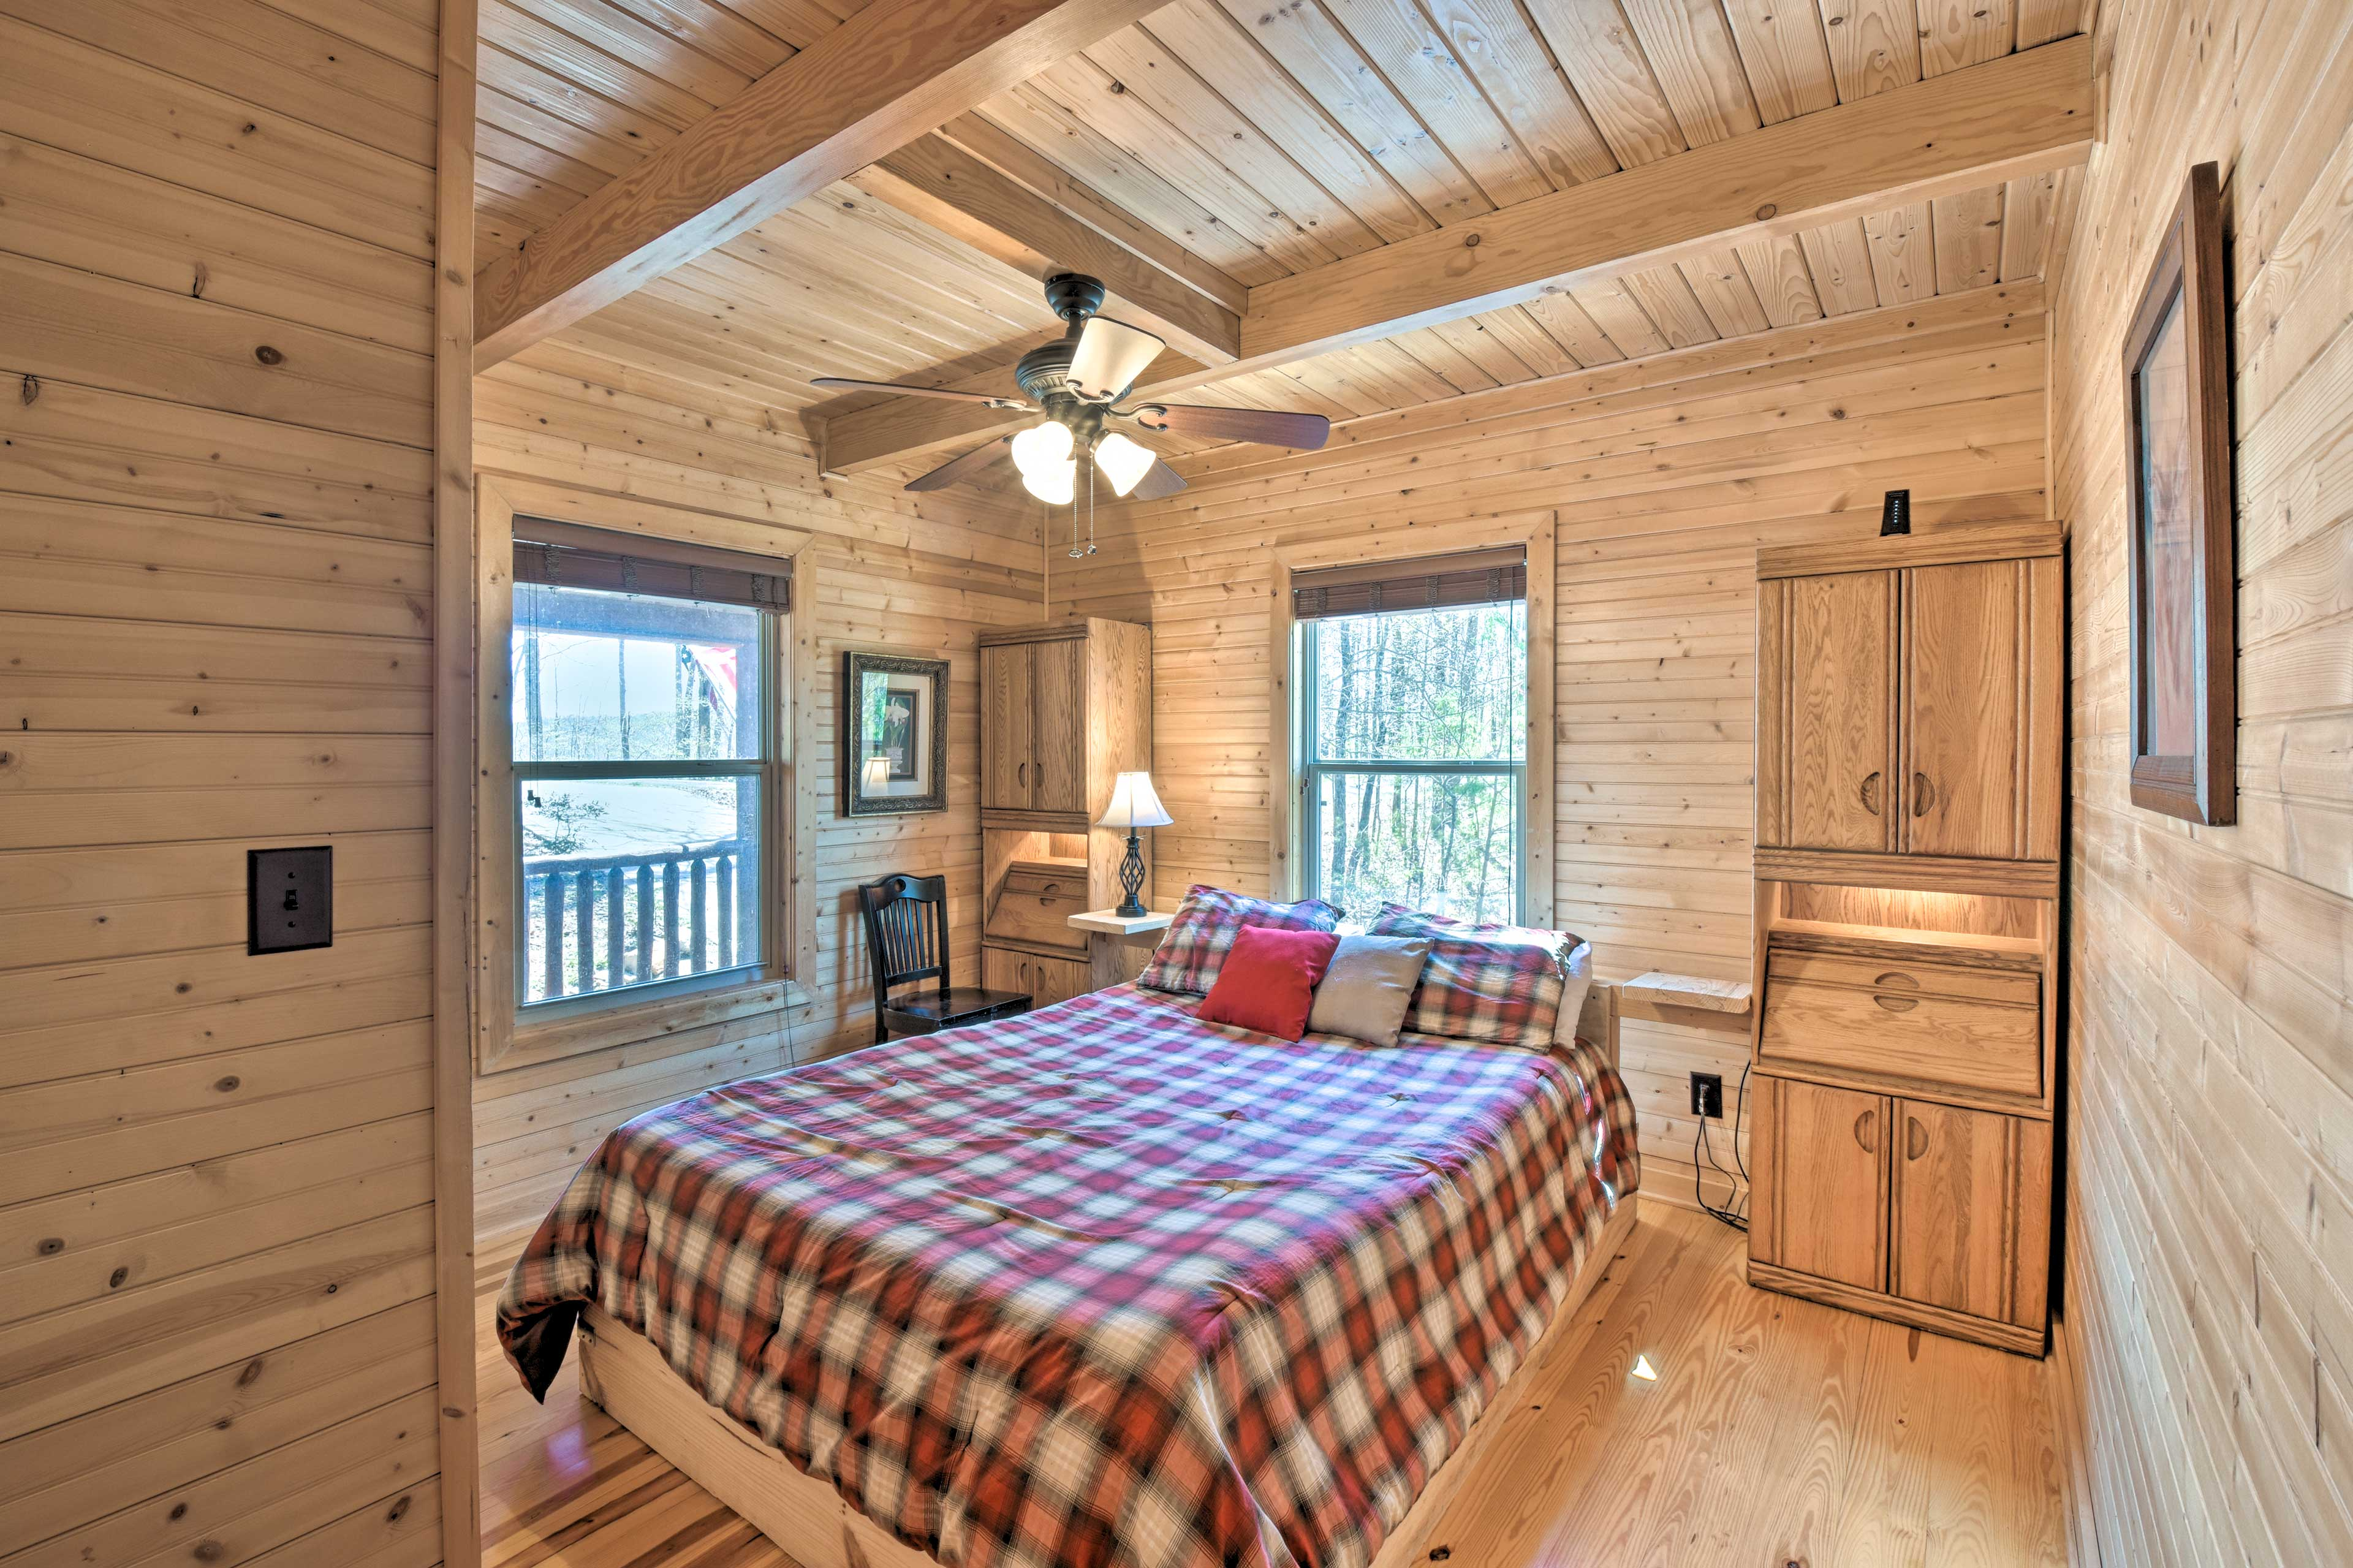 The second bedroom boasts a queen bed for 2.